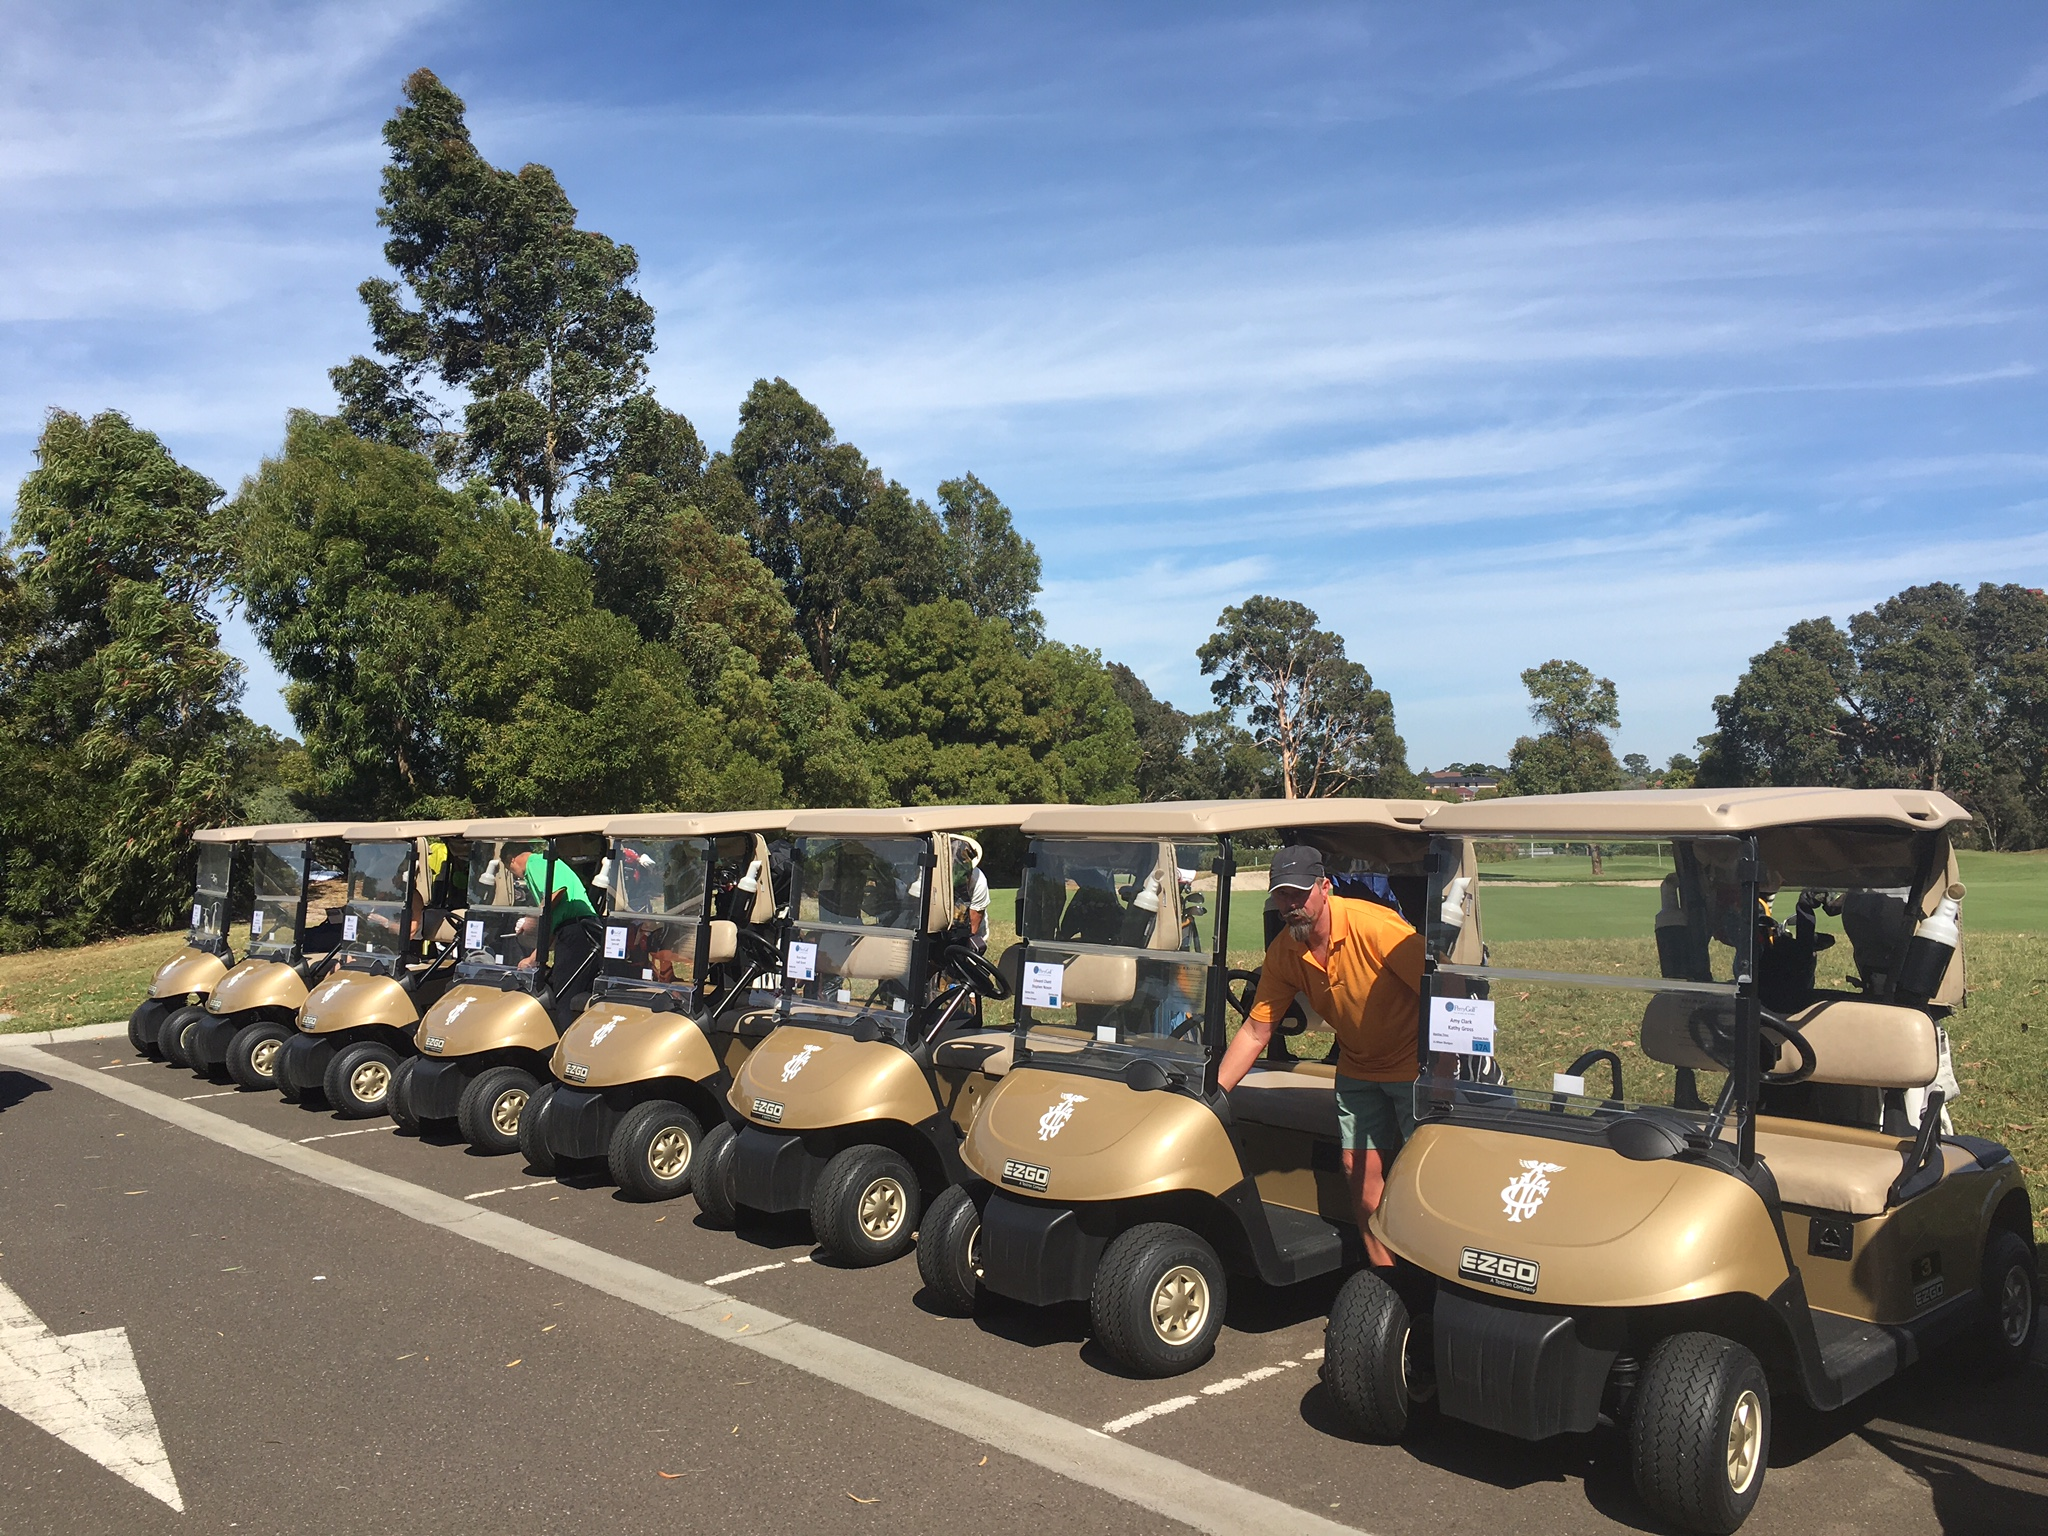 Carts ready for PerryGolf guests at Yarra Yarra Golf Club, Australia during our 2016 Australasia Golf Cruise!